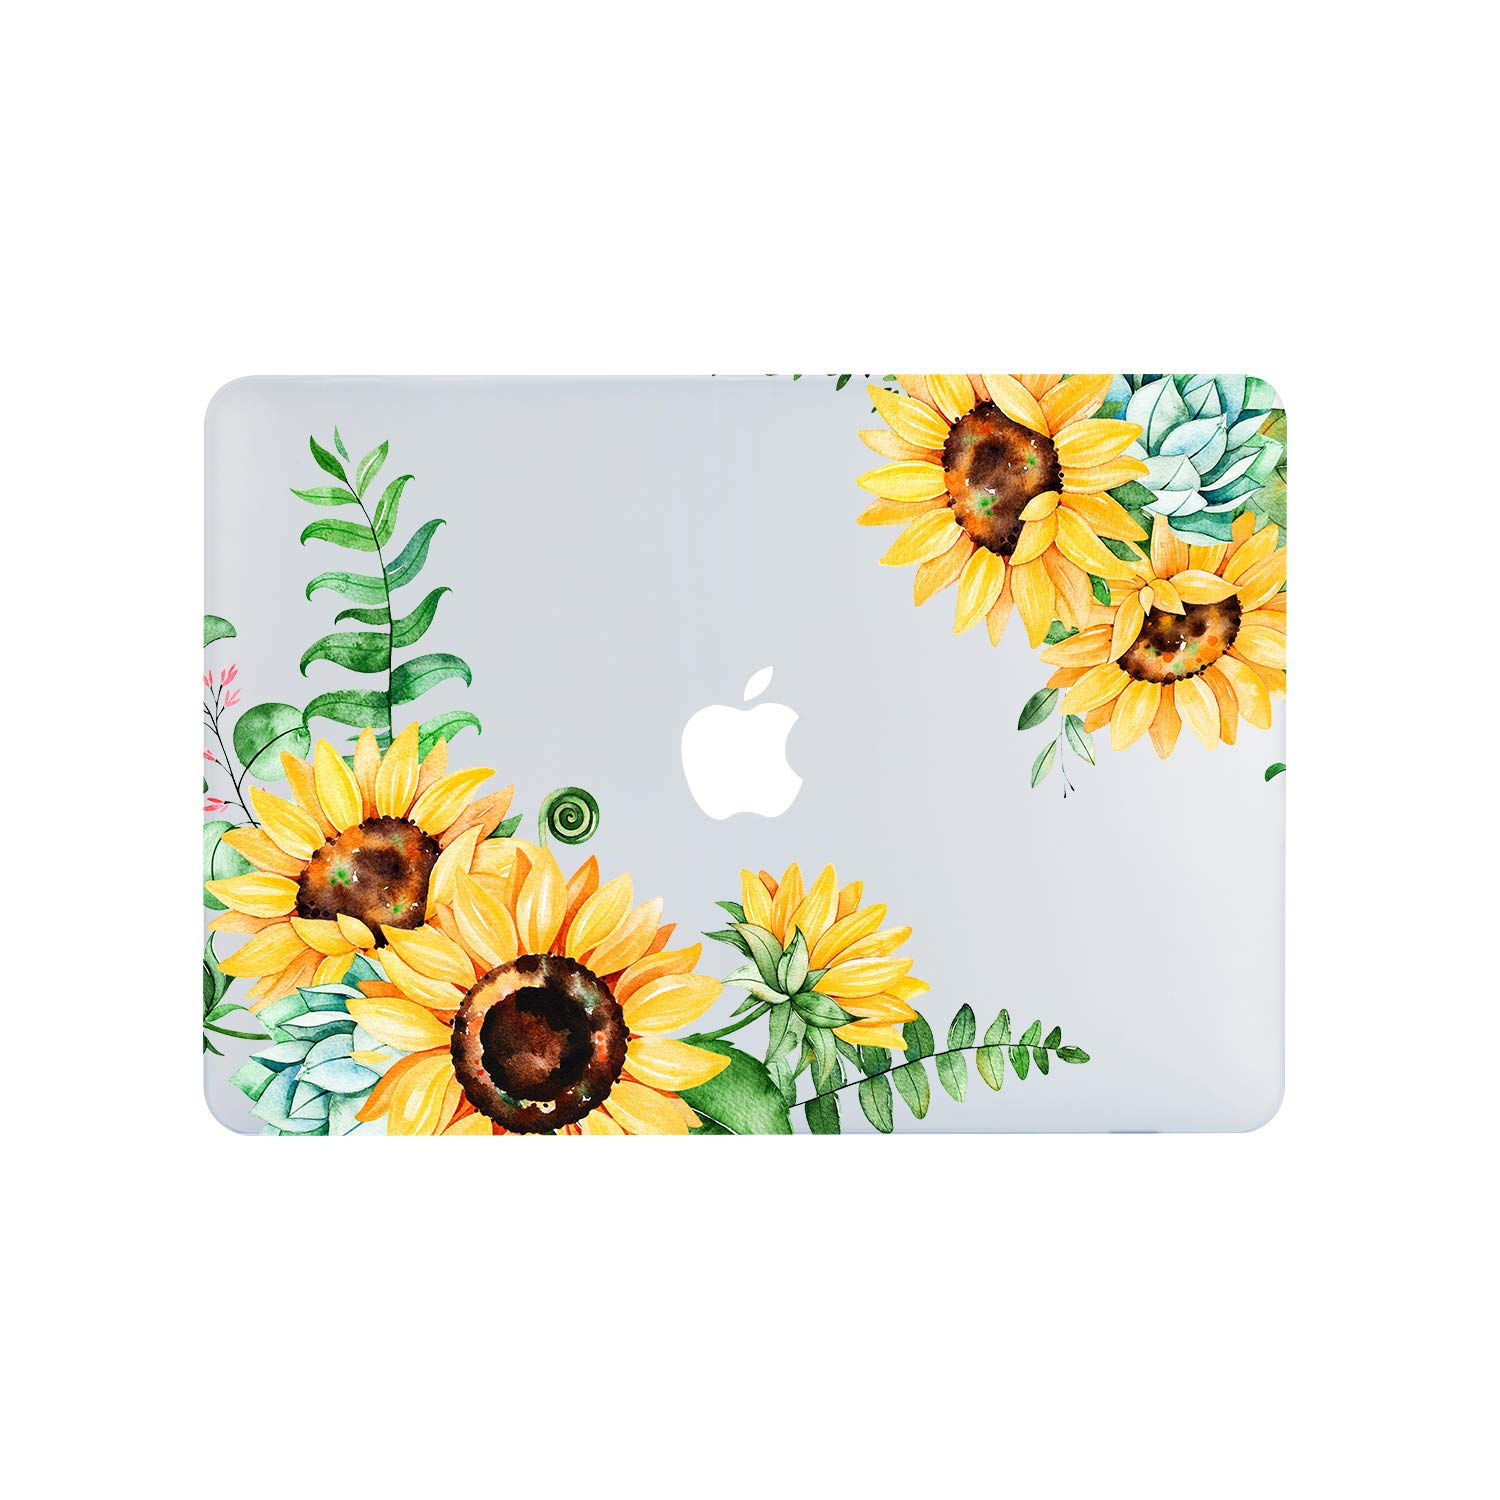 Lapac MacBook Air 13 Inch Bright Sunflower Clear Case 2019 2018 Release A1932, Soft Touch Hard Shell Case & Retina Display Fits Touch ID with Keyboard Cover (Sunflower2(A1932))